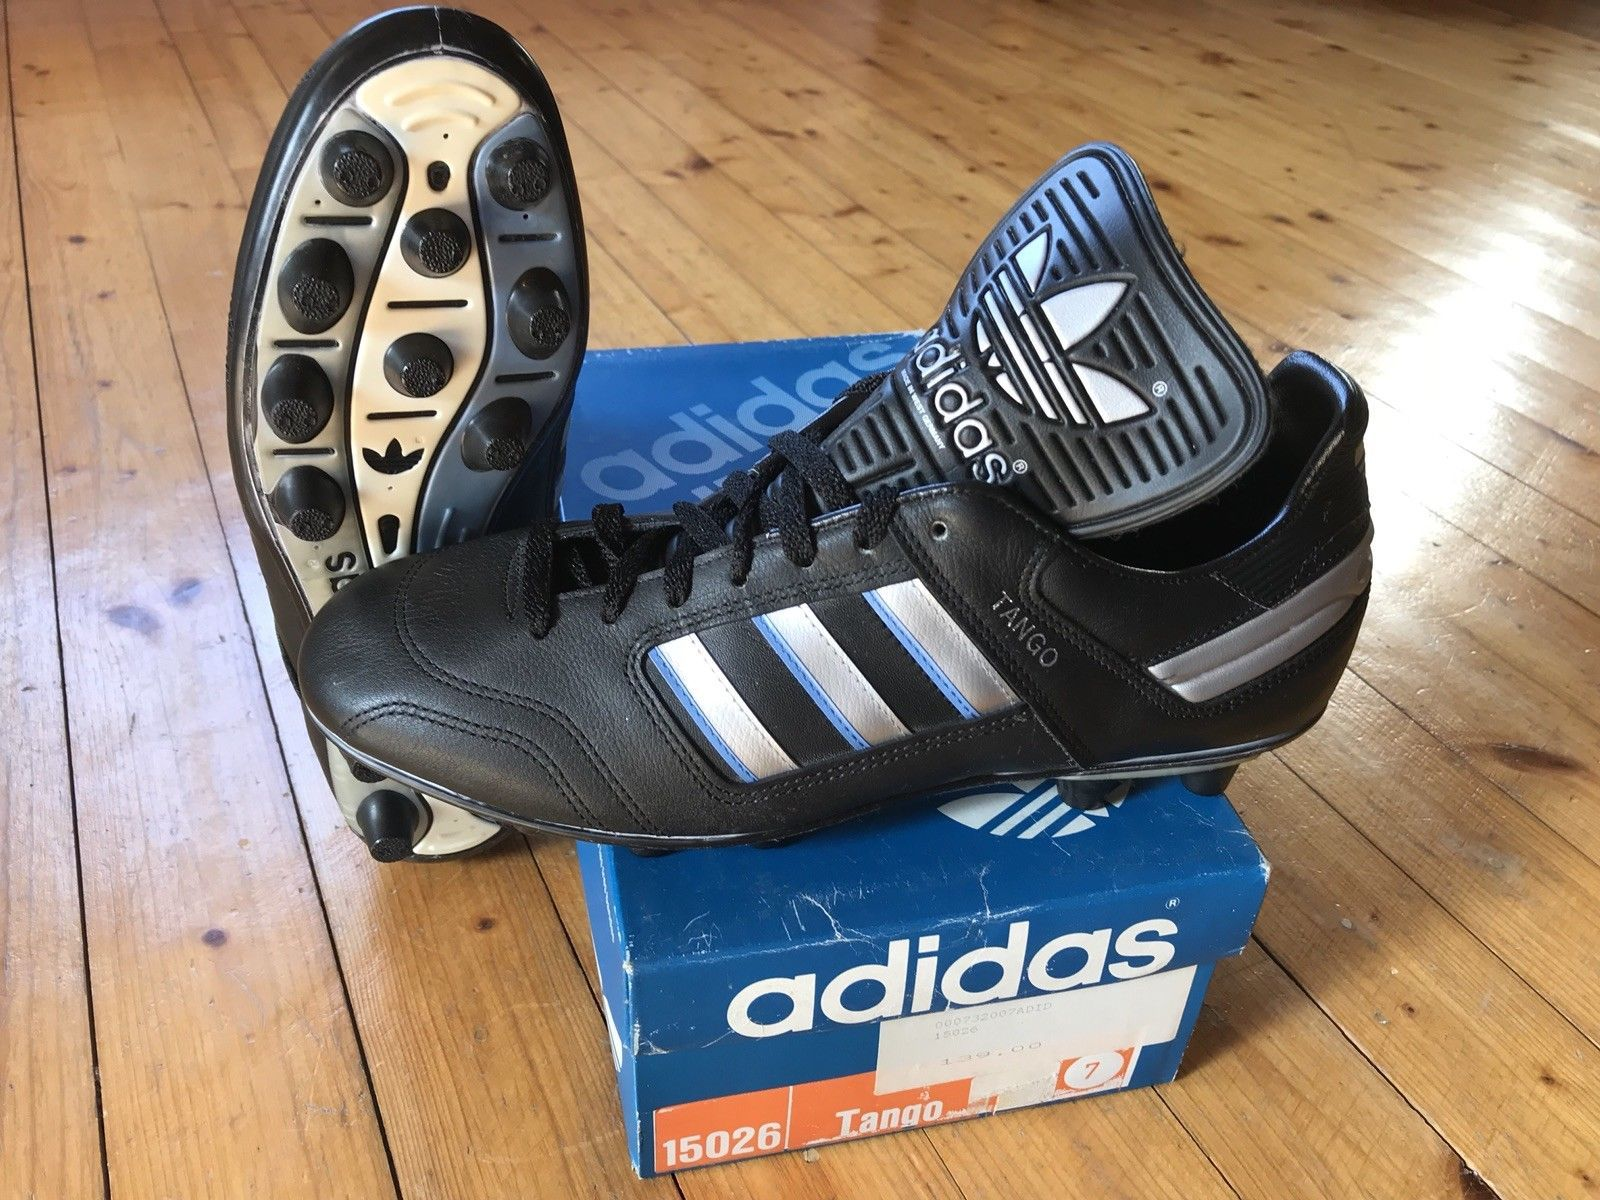 Vintage Adidas Tango 7 soccer boots Made in West Germany WC